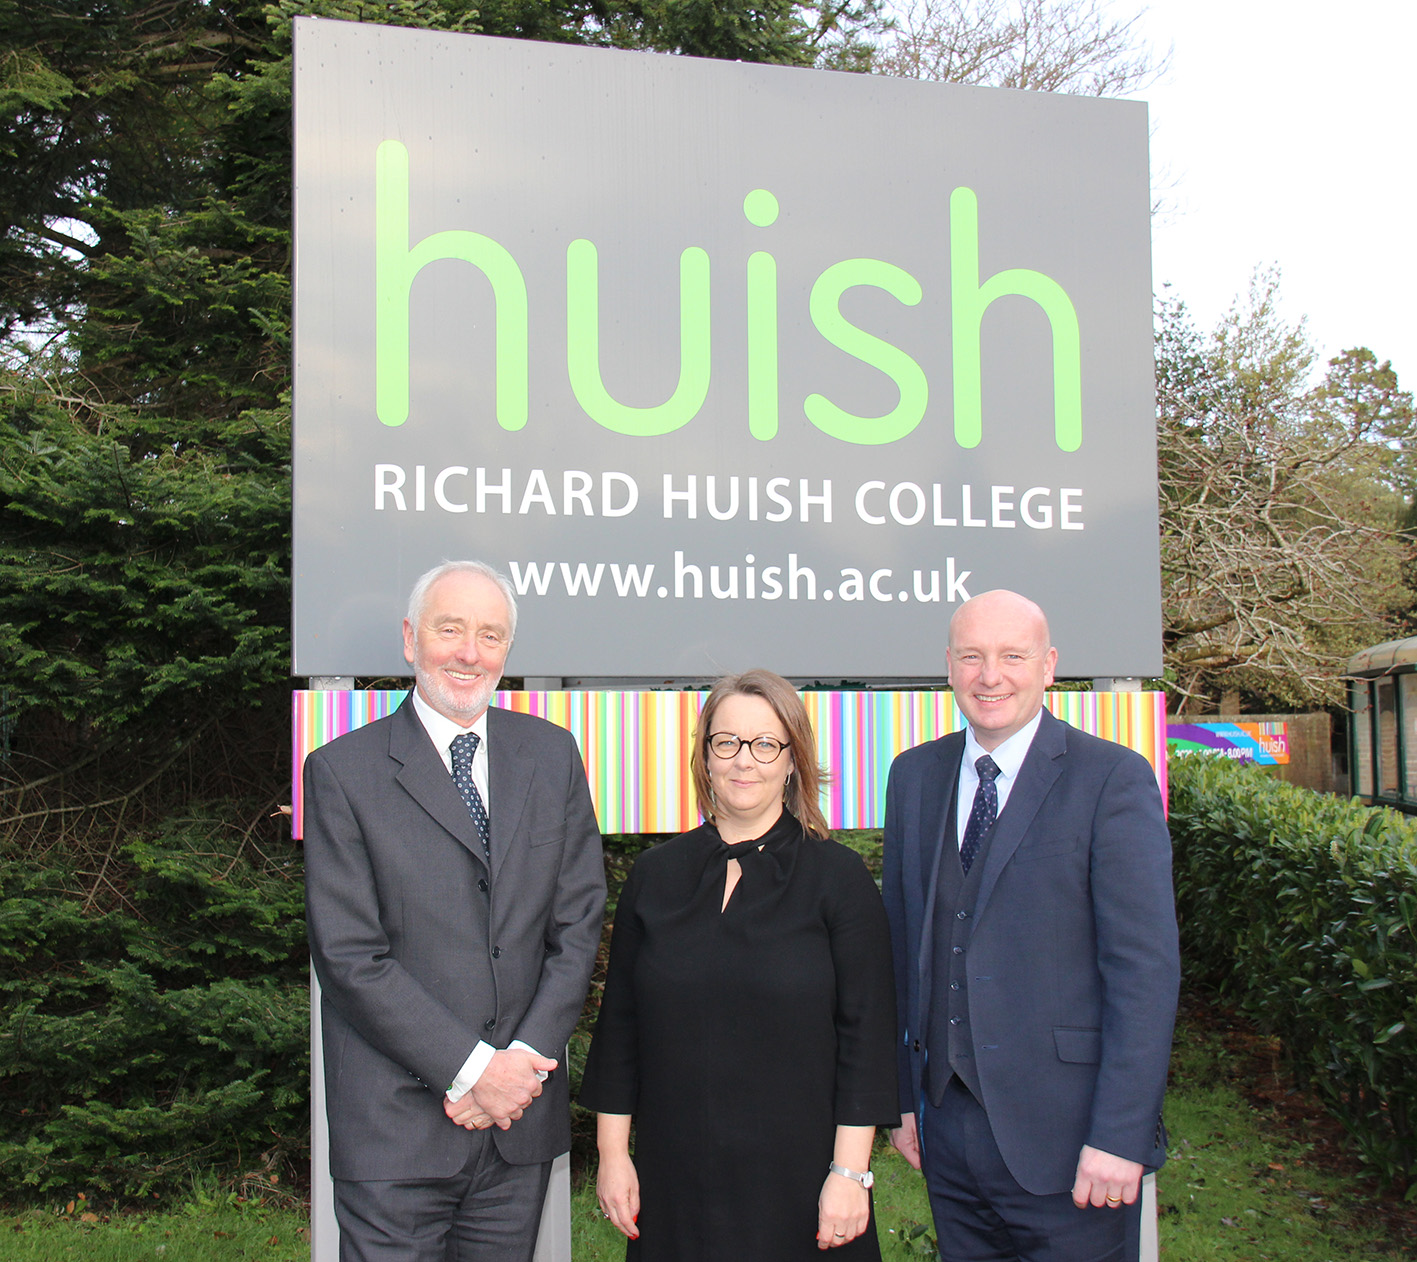 L to R – David Griffin (Chair of Governors), Emma Fielding (Principal), John Abbott (Chief Executive, Huish Education Group)